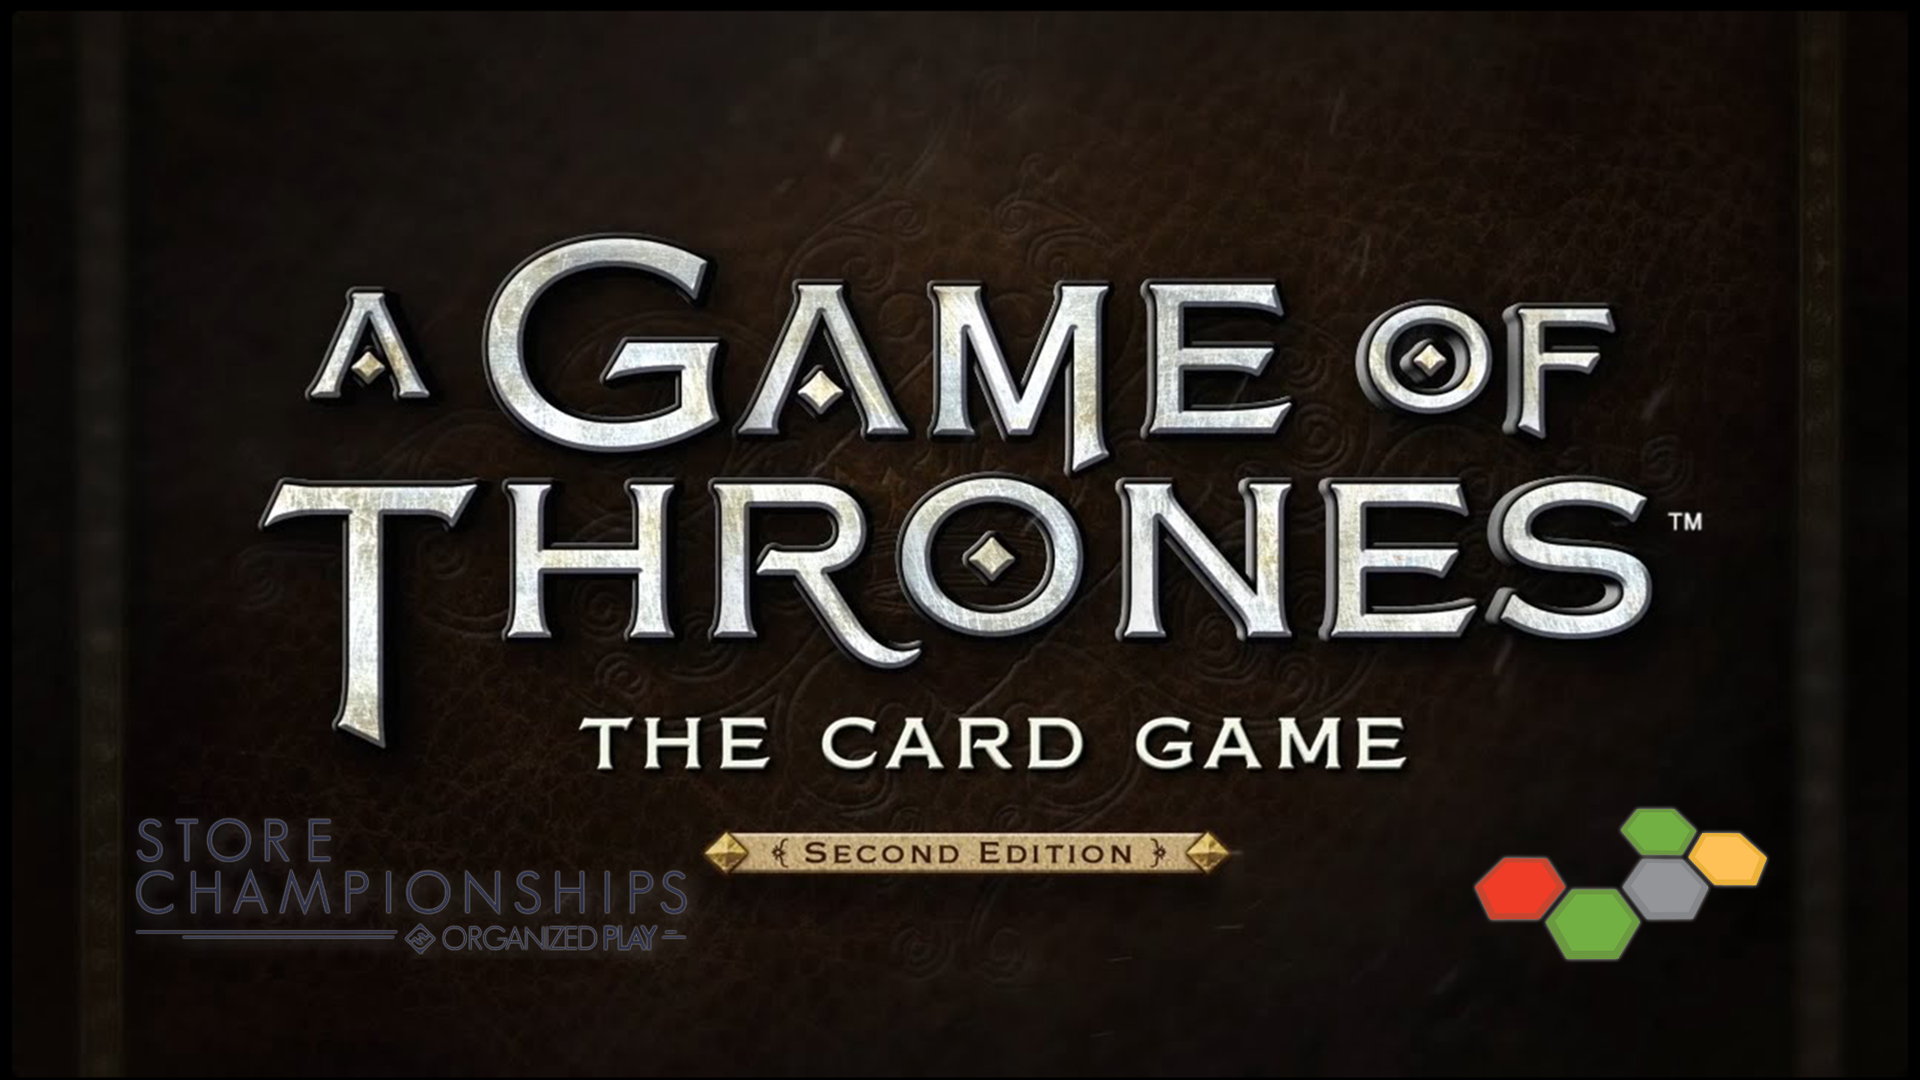 Game of Thrones Store Championship Event Image.png